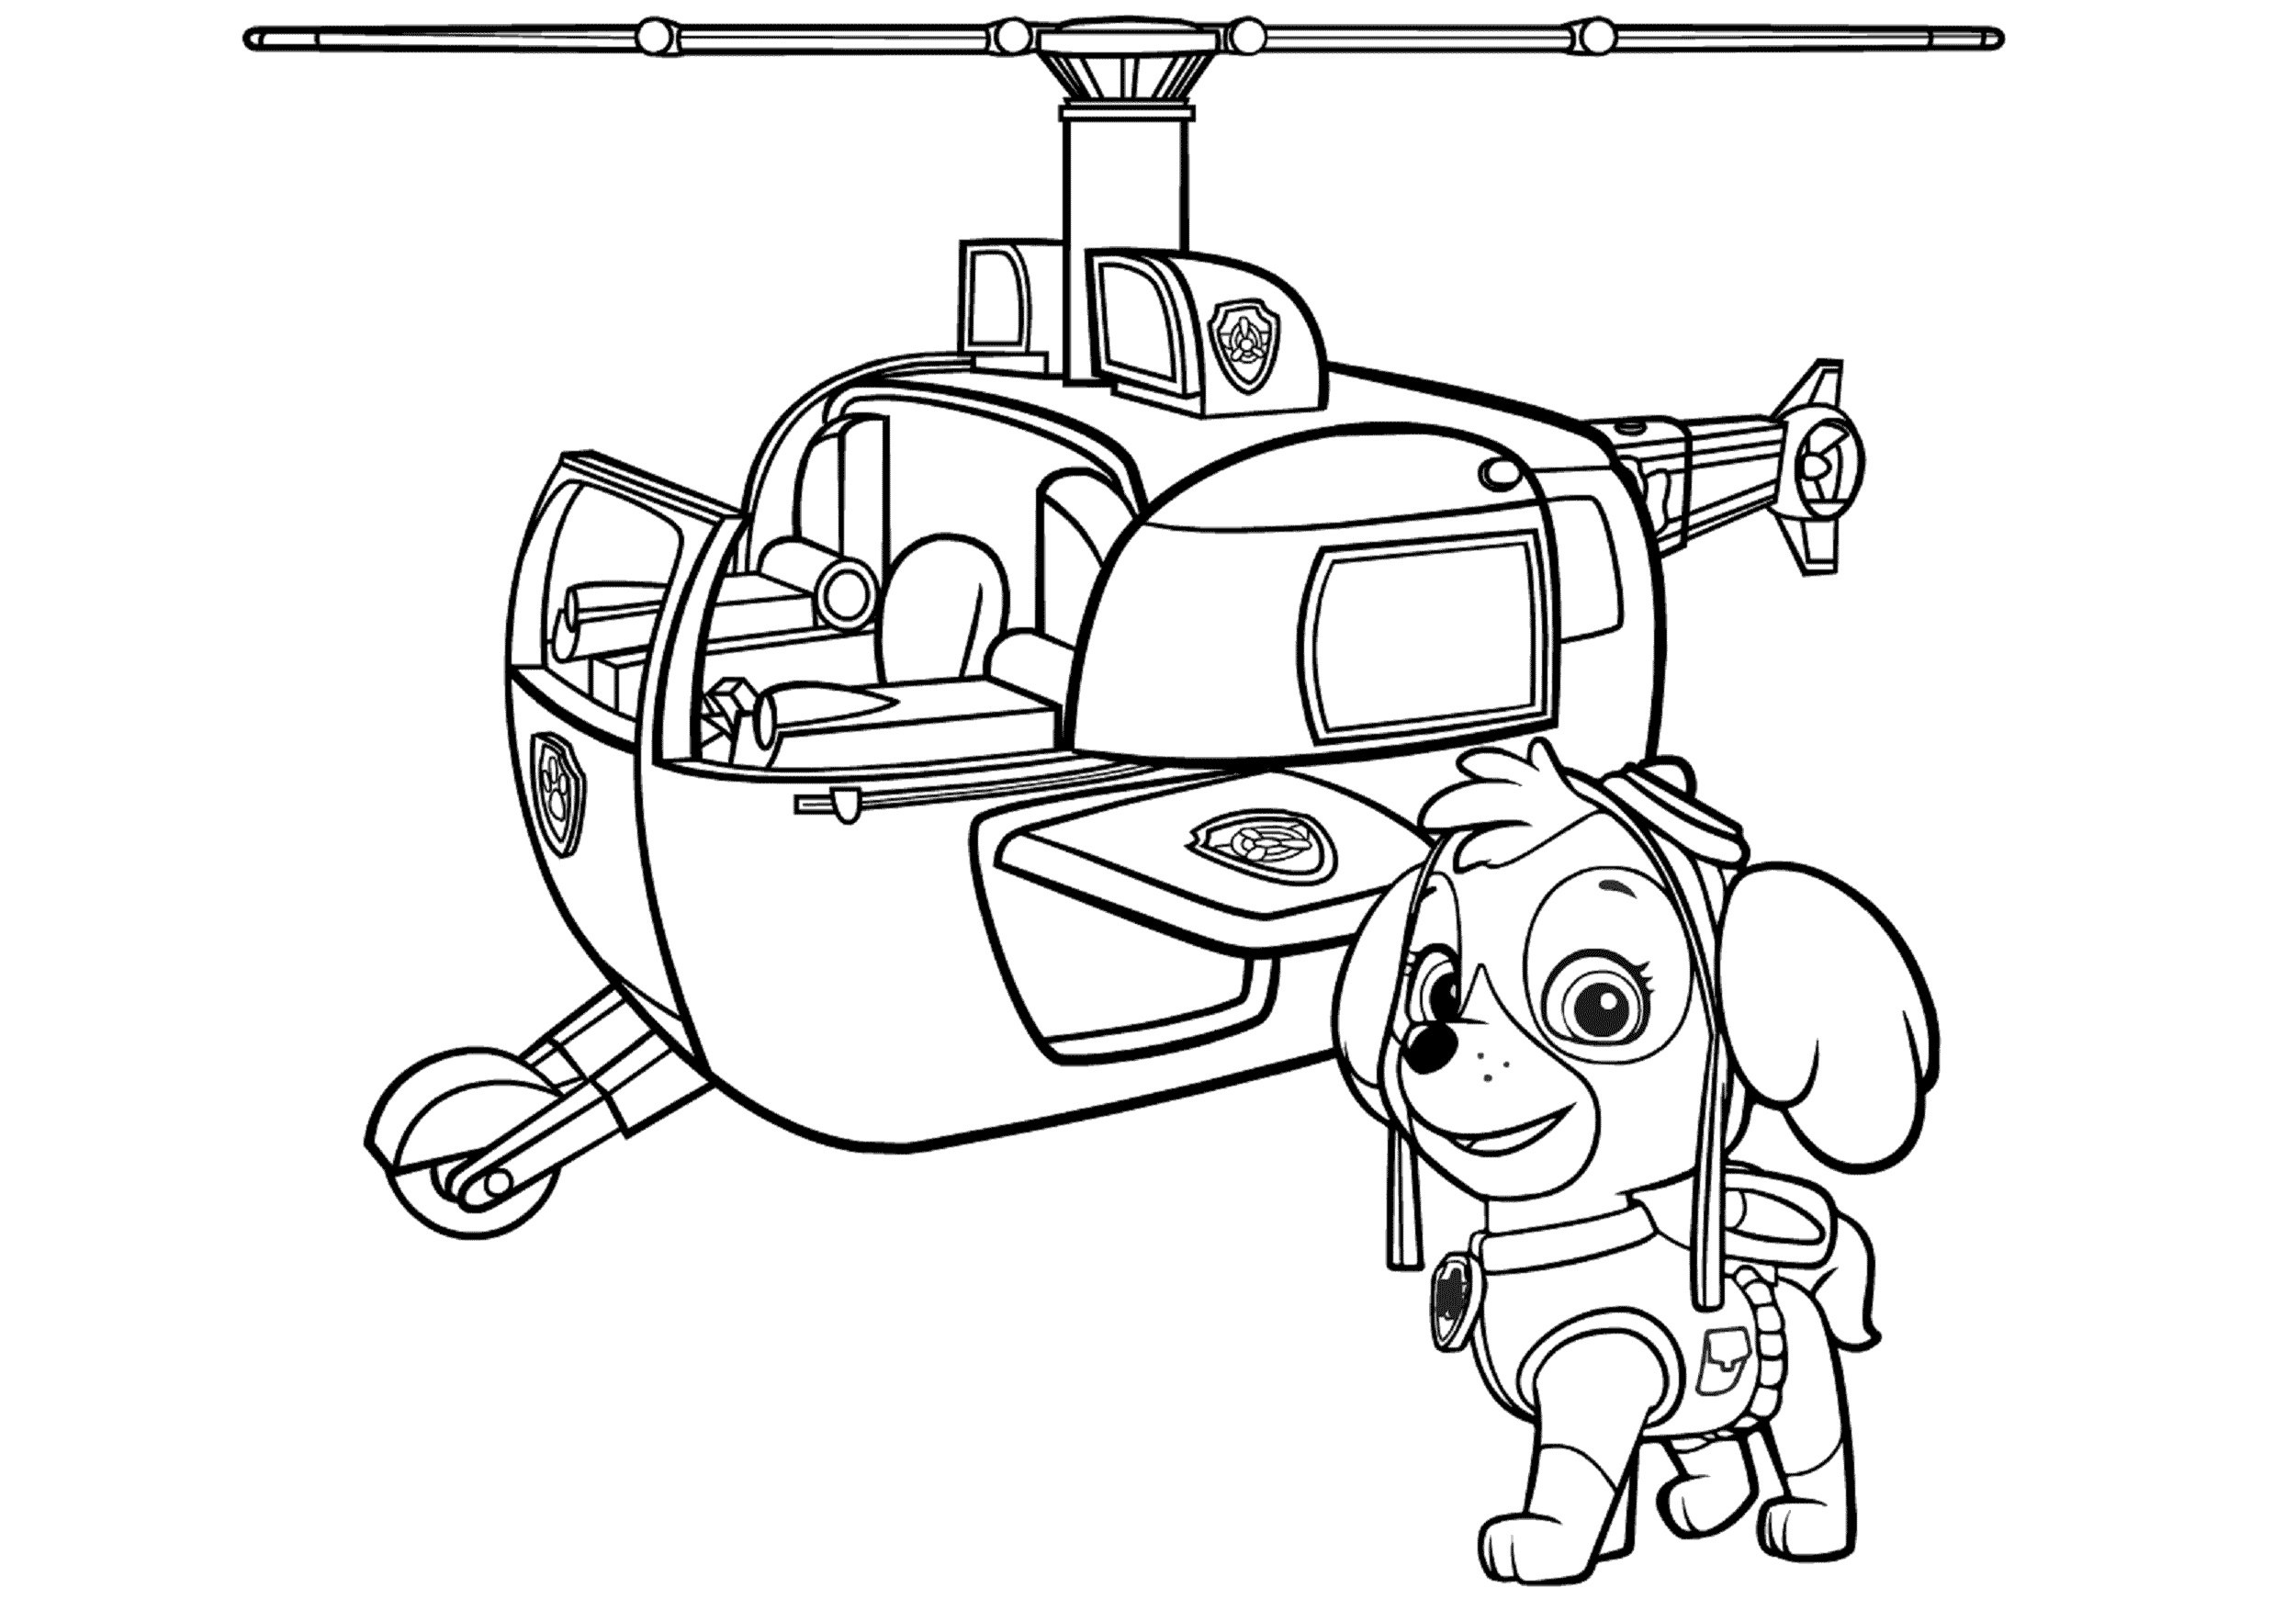 Skye Helicopter Coloring Pages Paw Patrol Skye Airlift and Rescue Pup with Helicopter